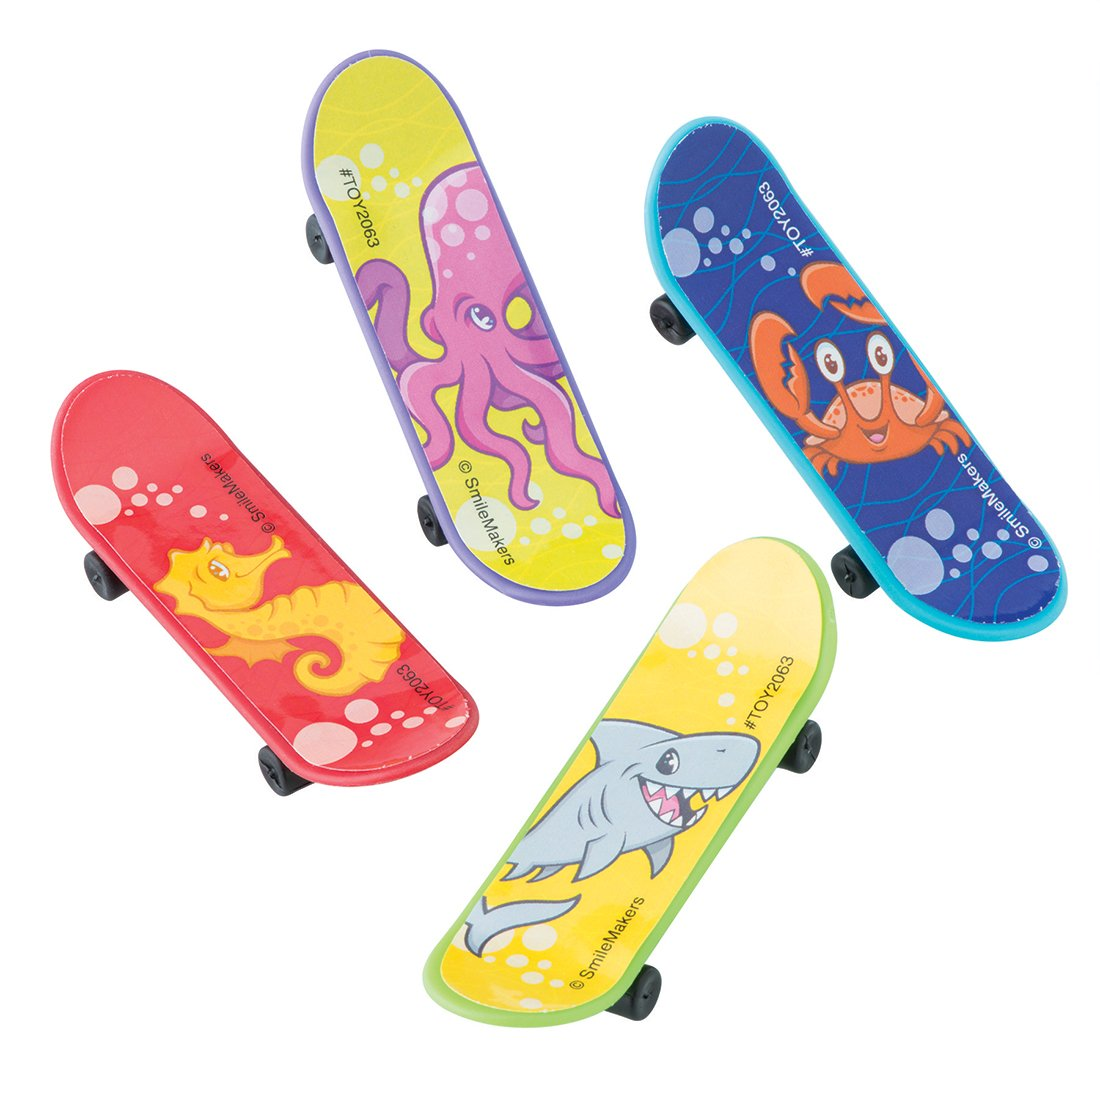 SmileMakers Sea Life Pals Mini Skateboards - Prizes 48 per Pack by SmileMakers